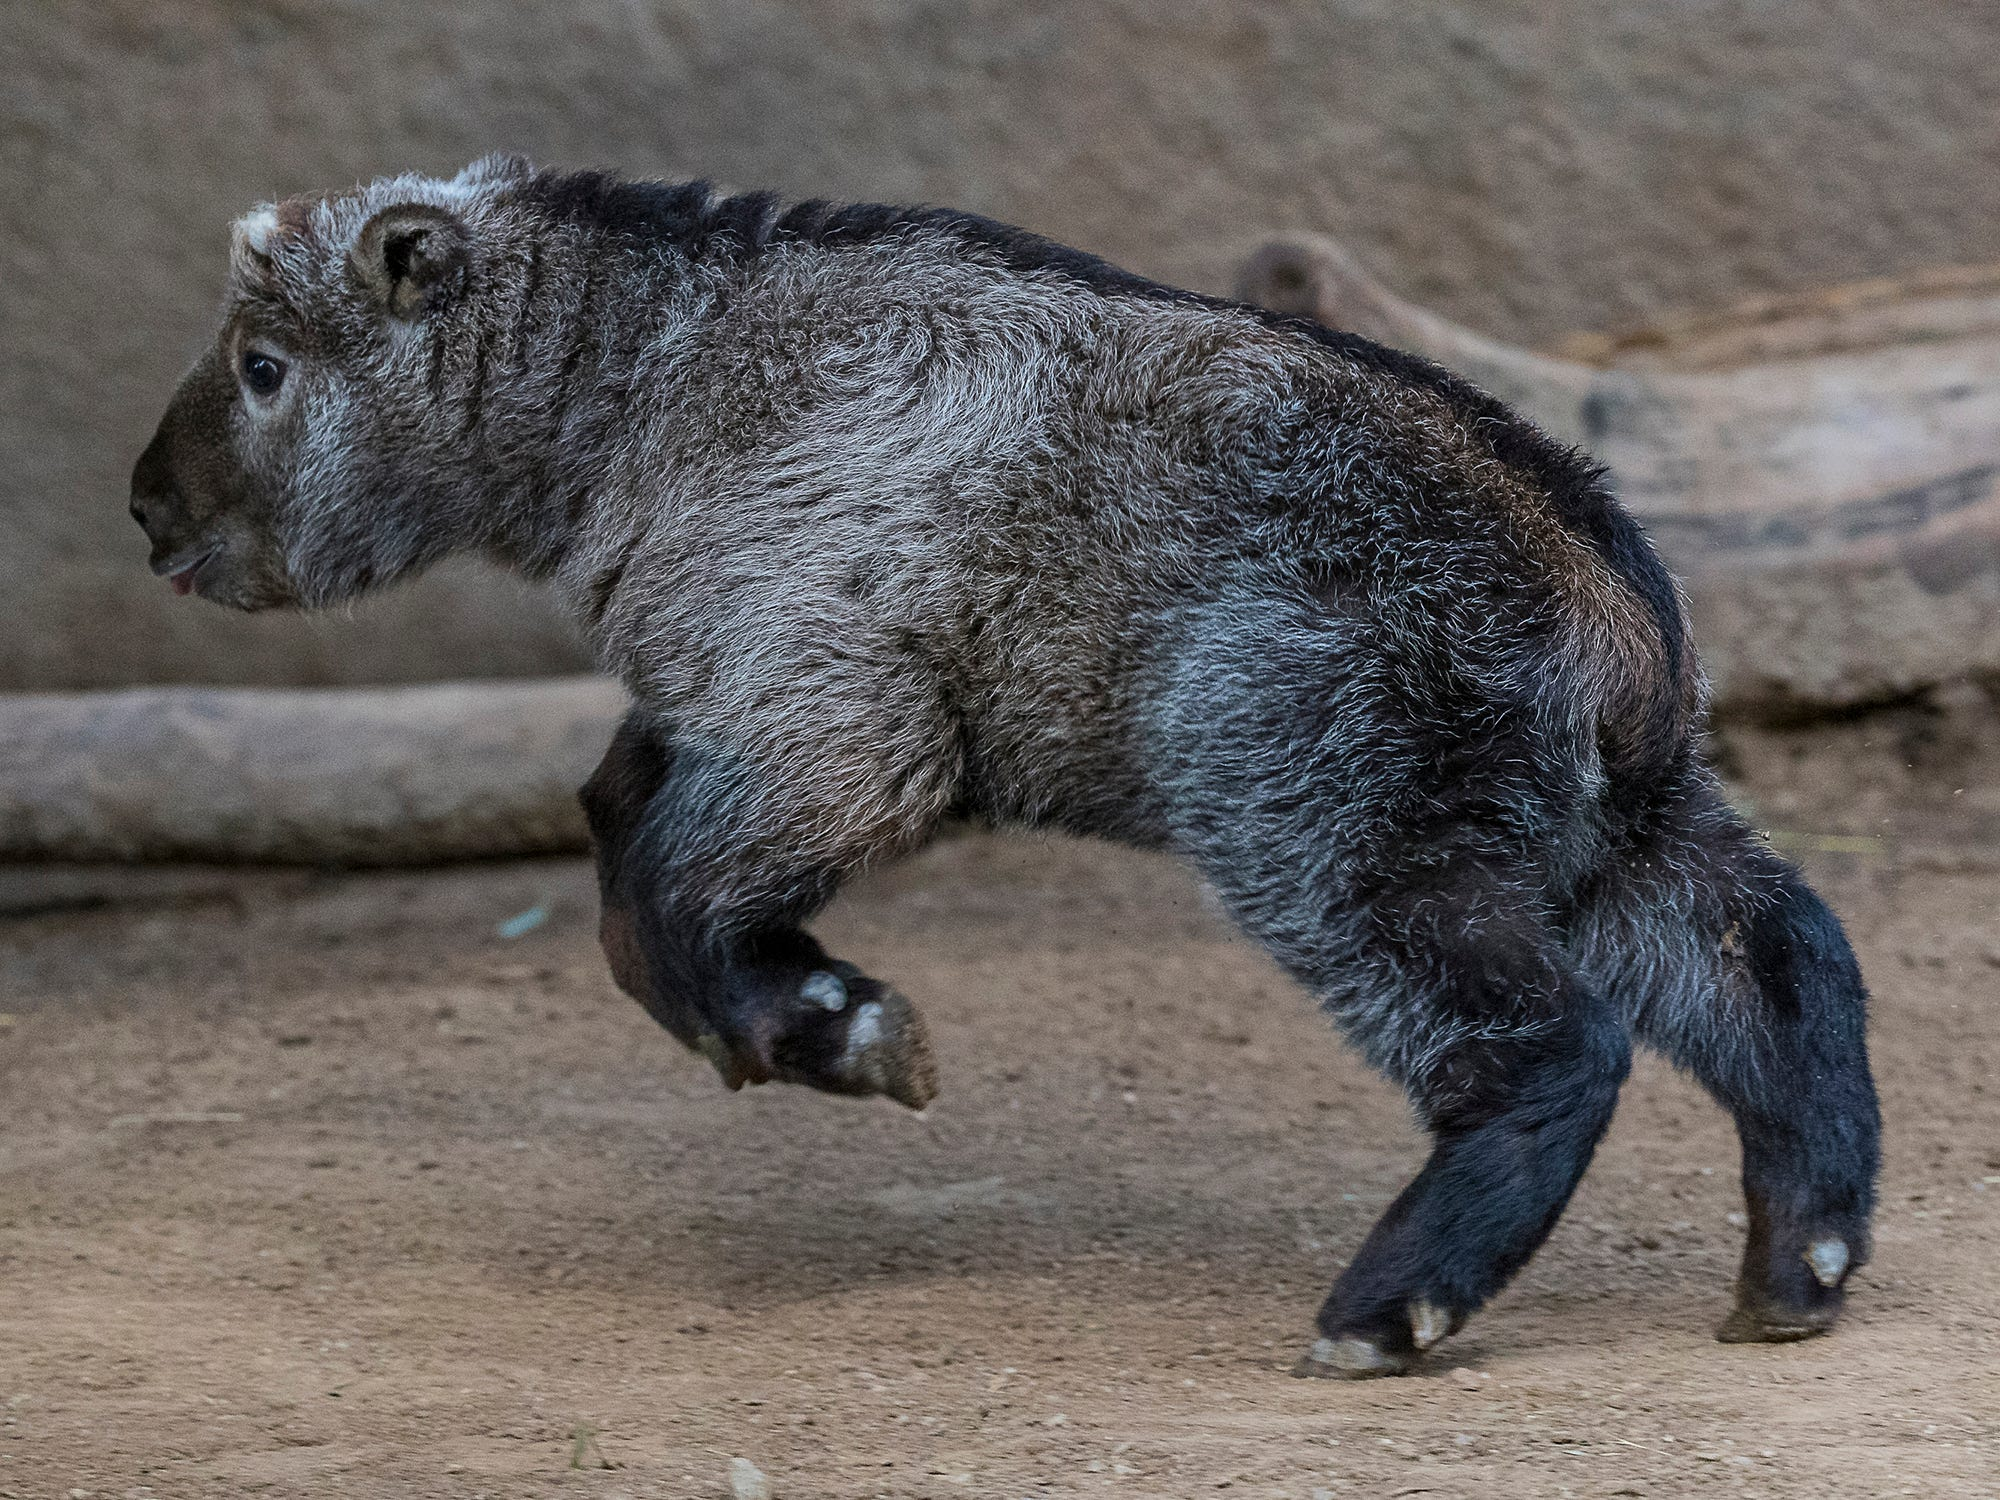 This playful takin was born in February at the San Diego Zoo.